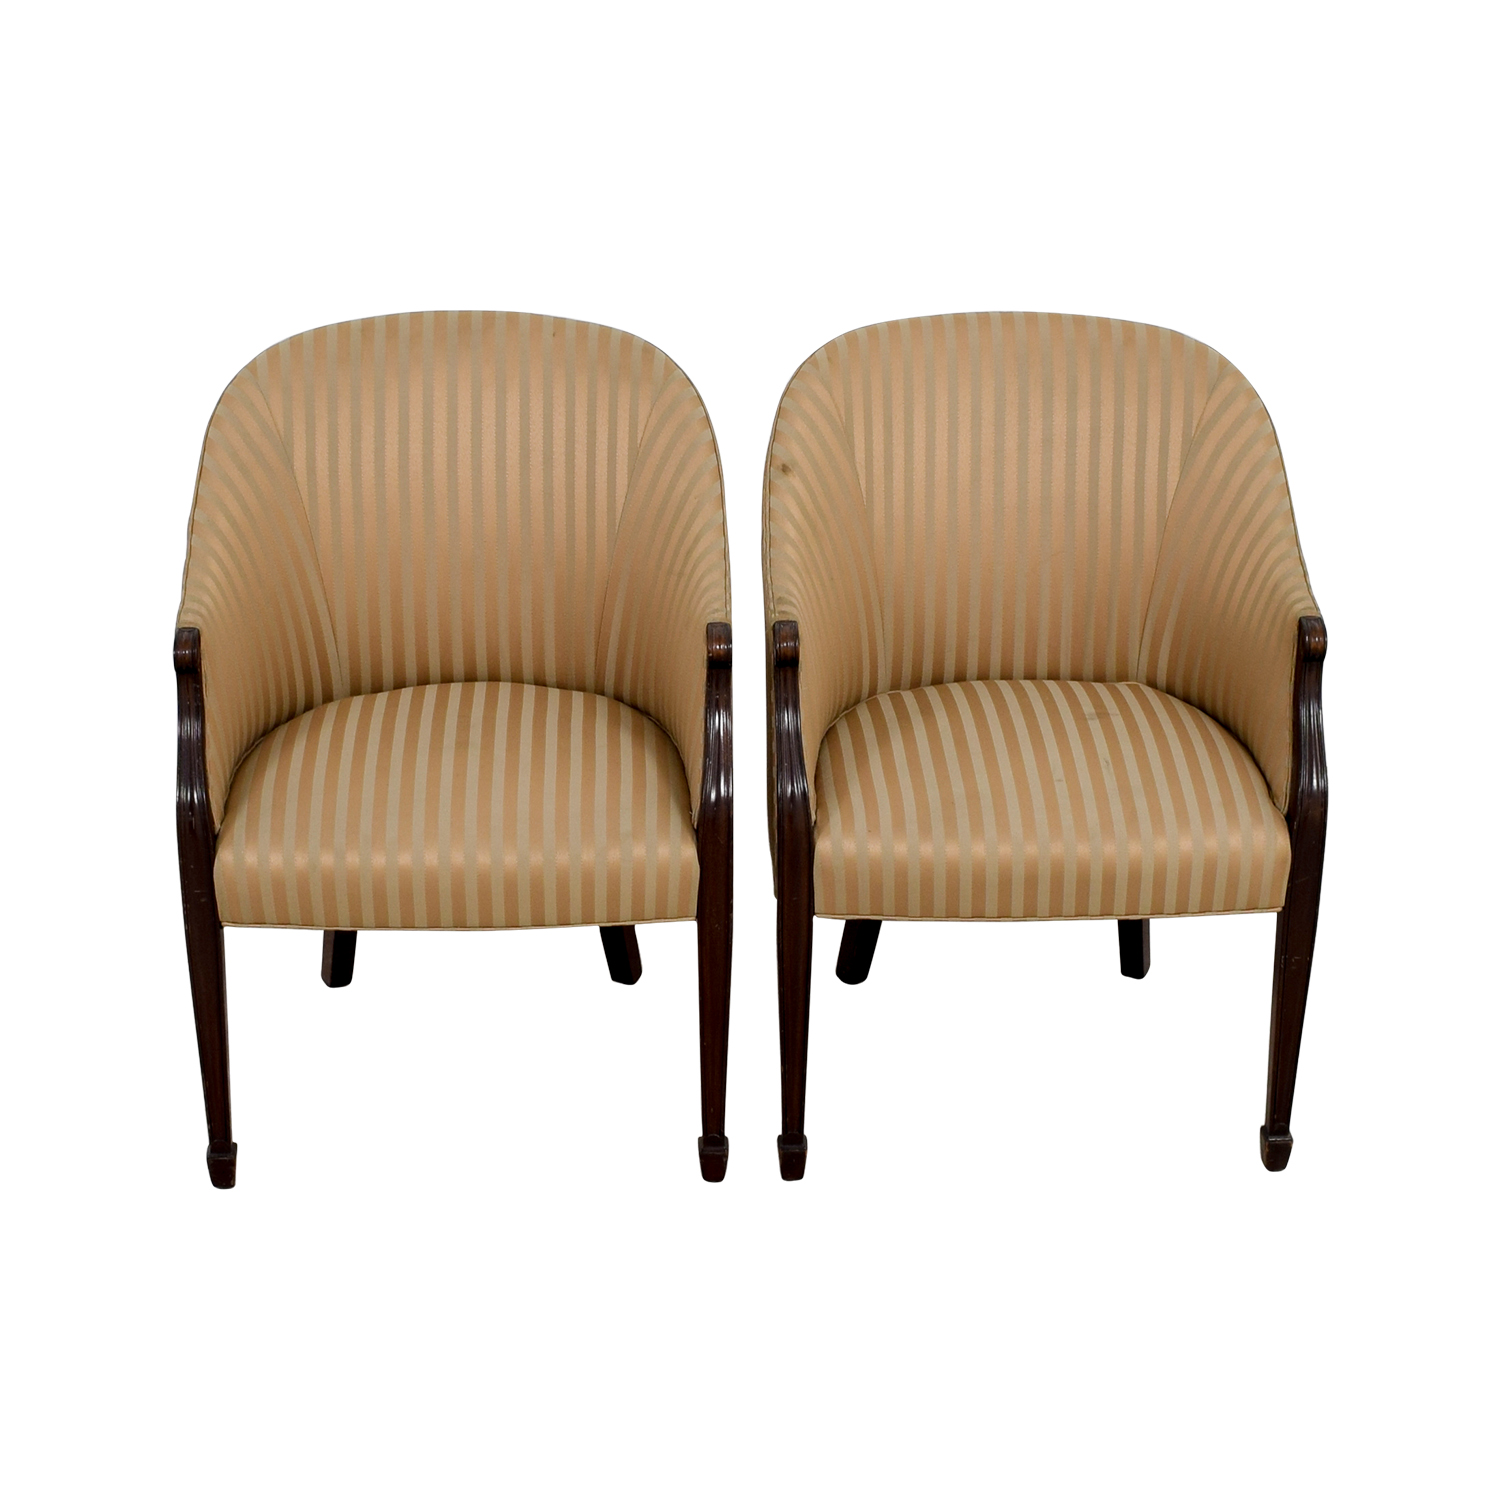 90 off paoli paoli gold striped accent chairs chairs. Black Bedroom Furniture Sets. Home Design Ideas